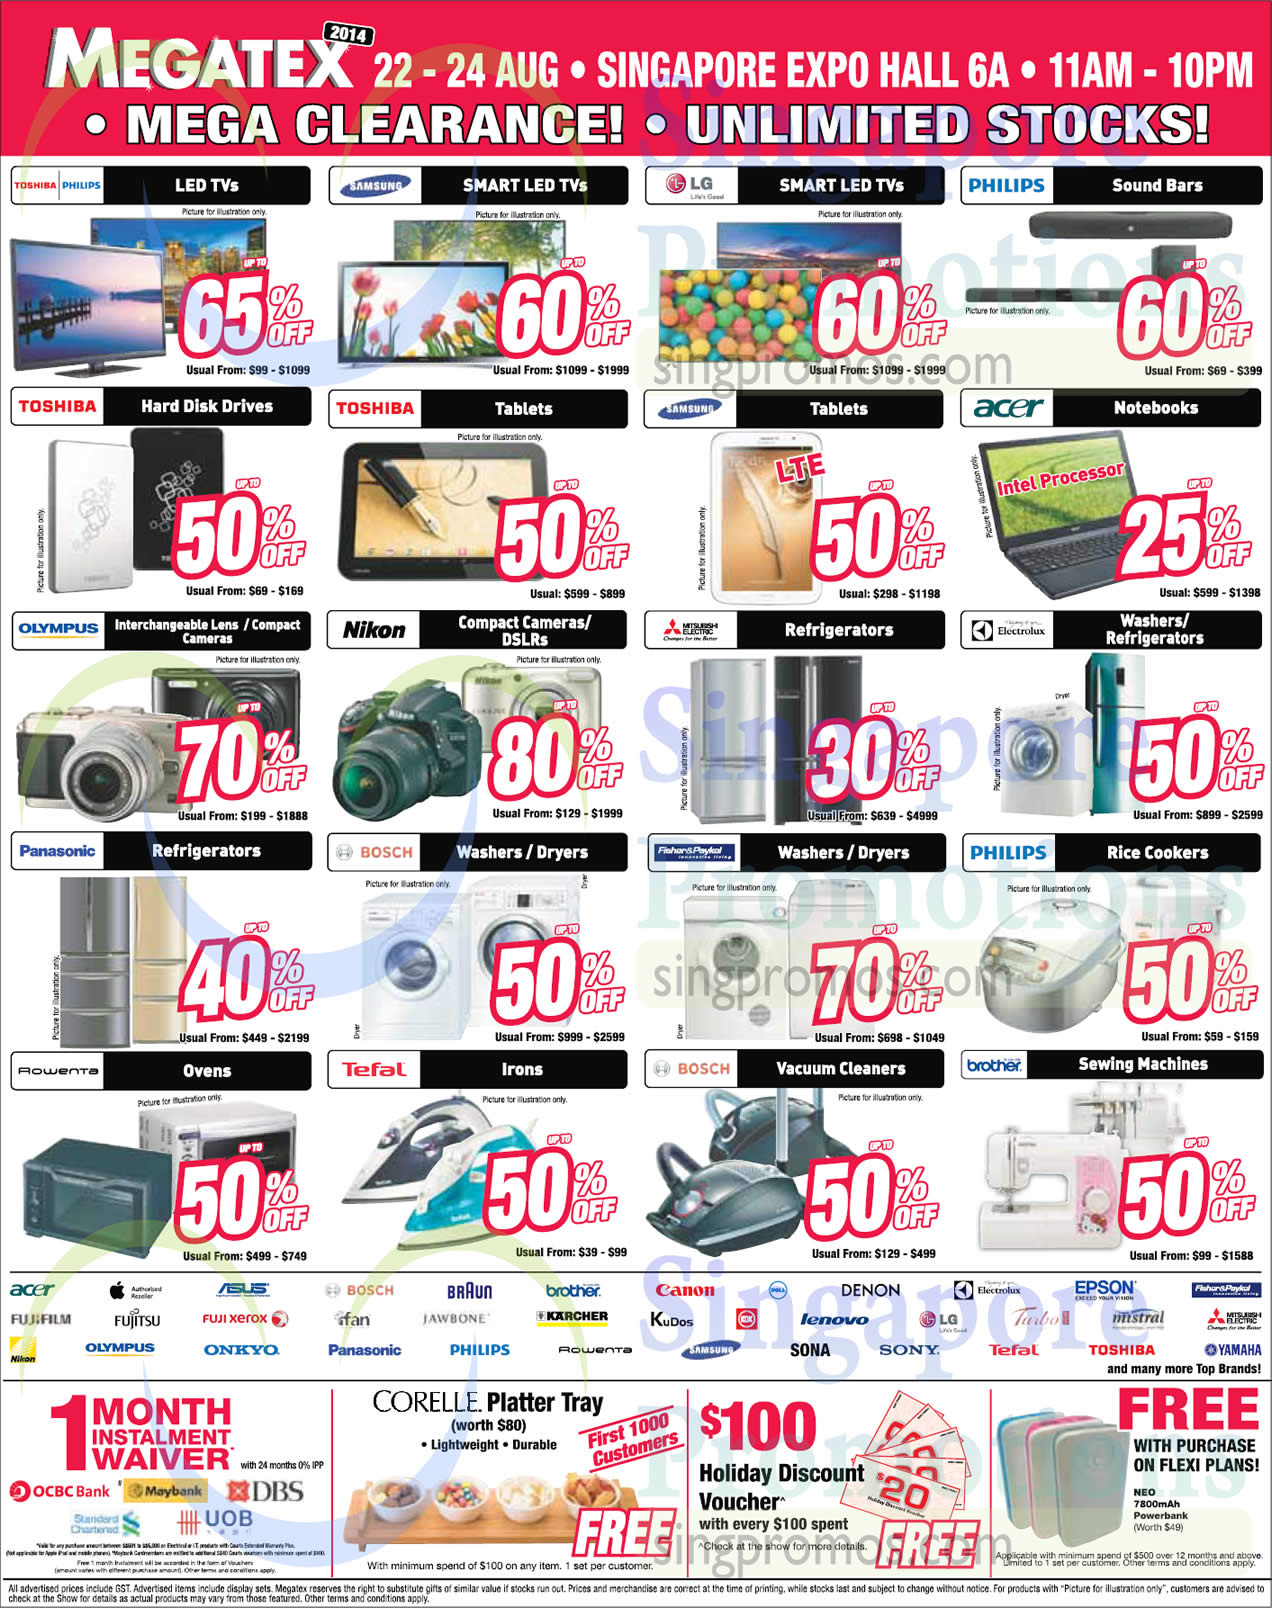 Kitchen Appliances Singapore 22 Aug Tvs Tablets Digital Cameras Home Appliances Kitchen